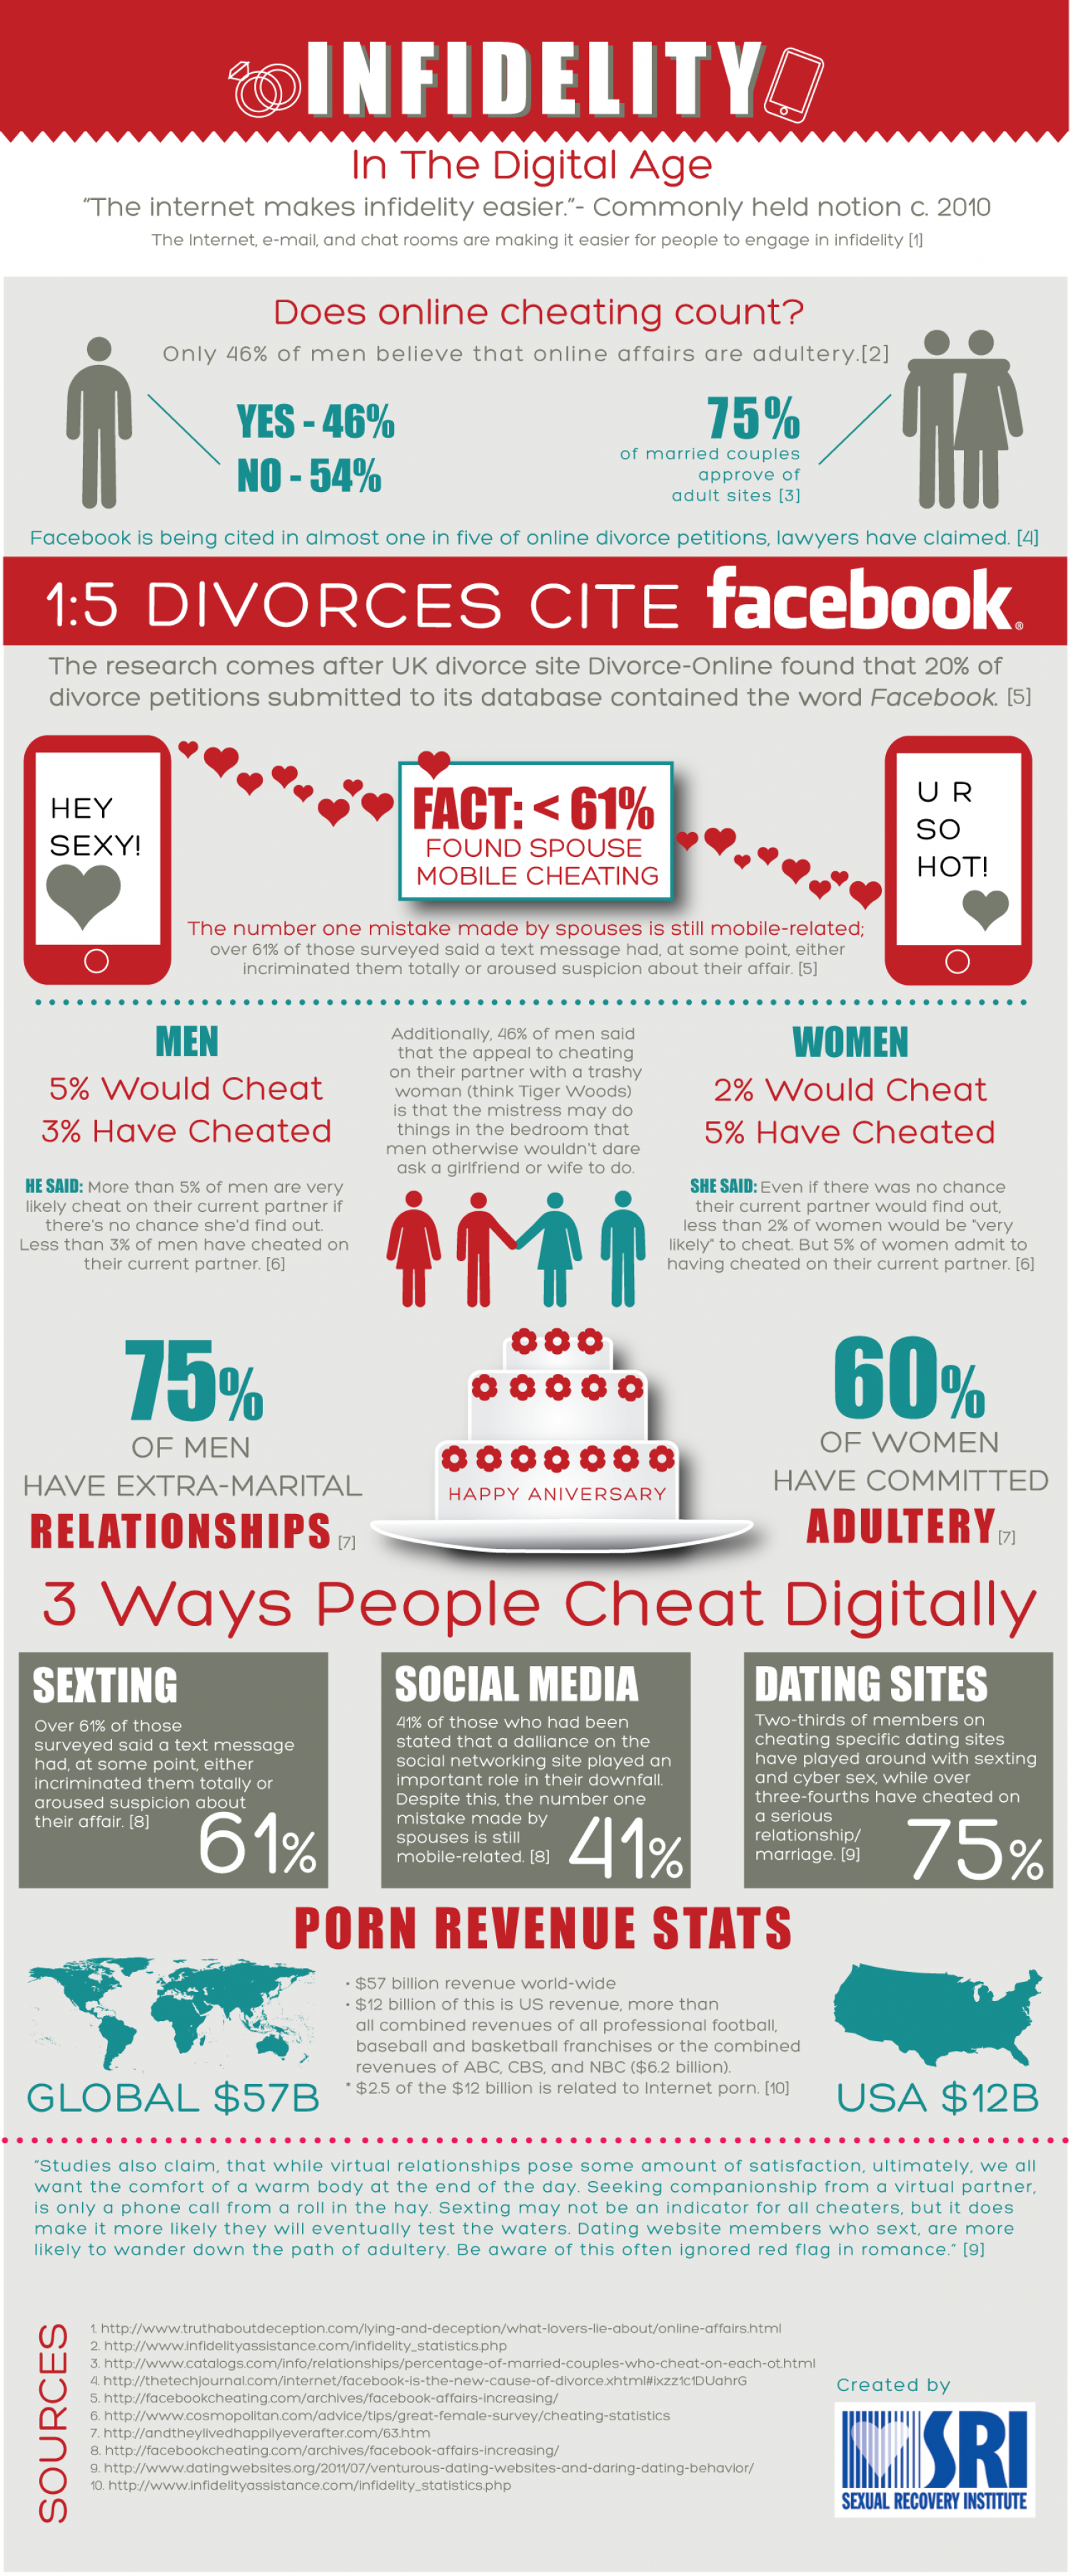 Infidelity in the Digital Age Infographic